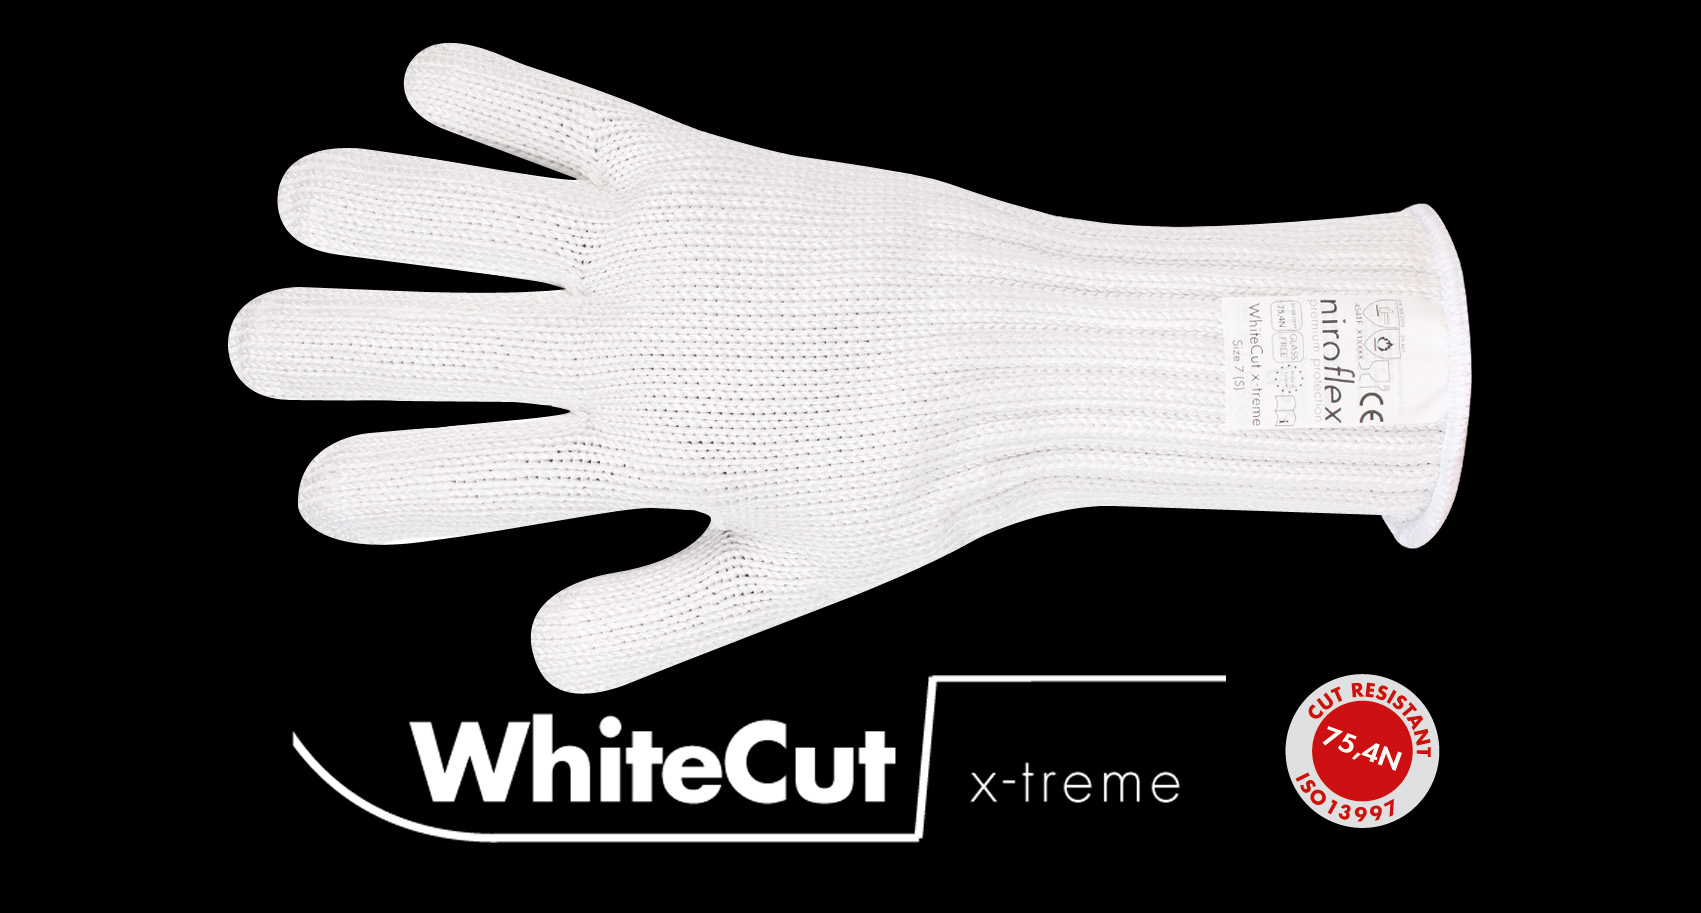 WhiteCut x-treme / x-tend